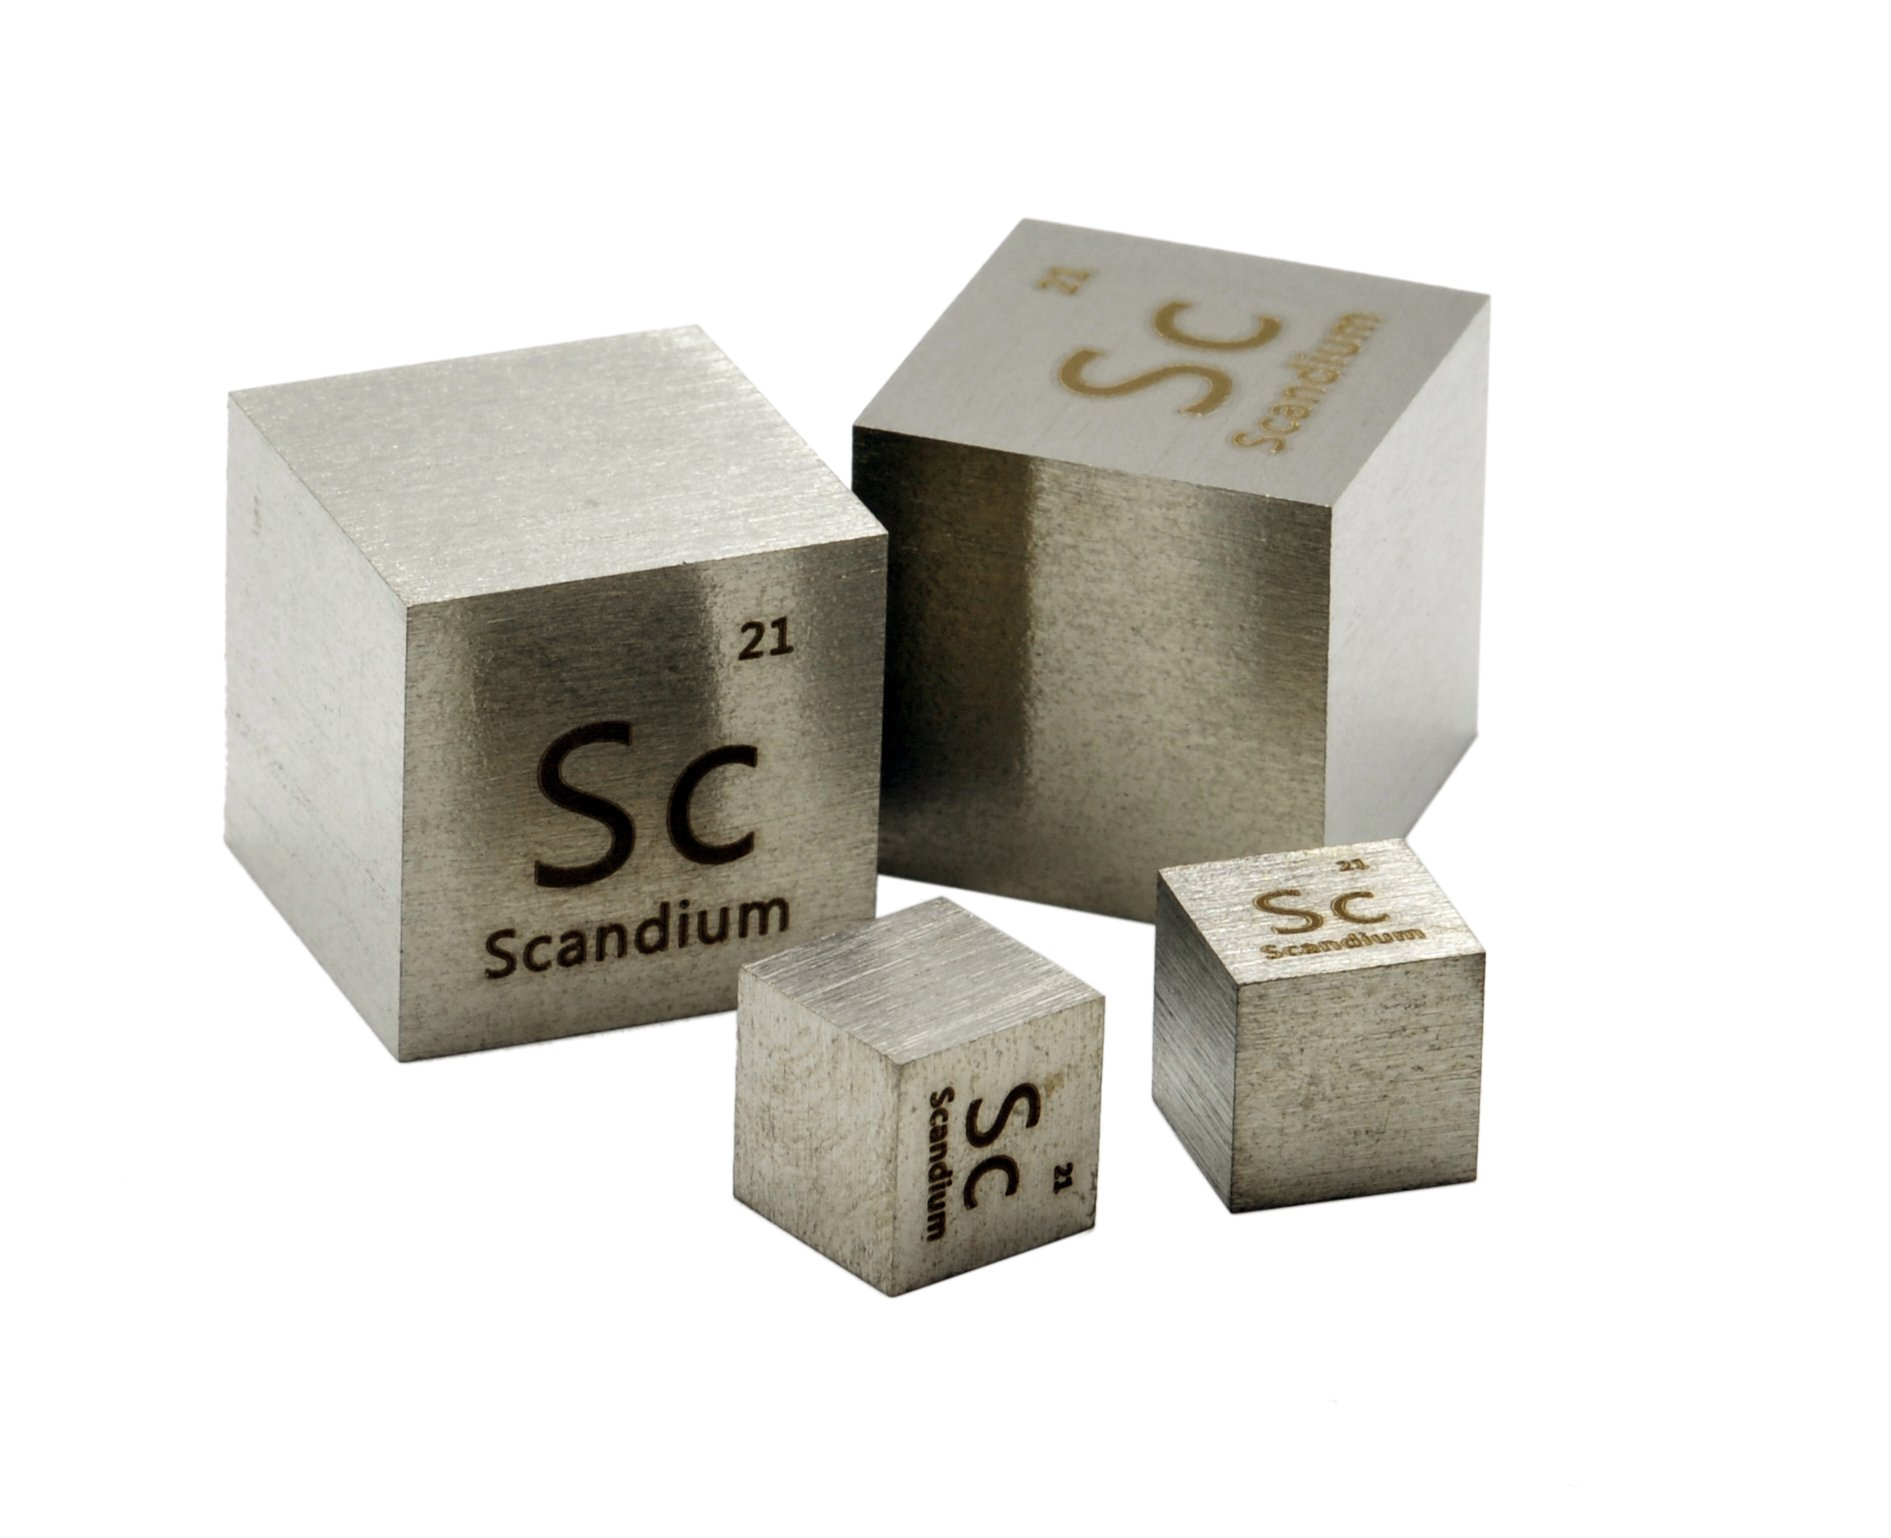 20mm Scandium Metal Density Cube 99.9% Pure